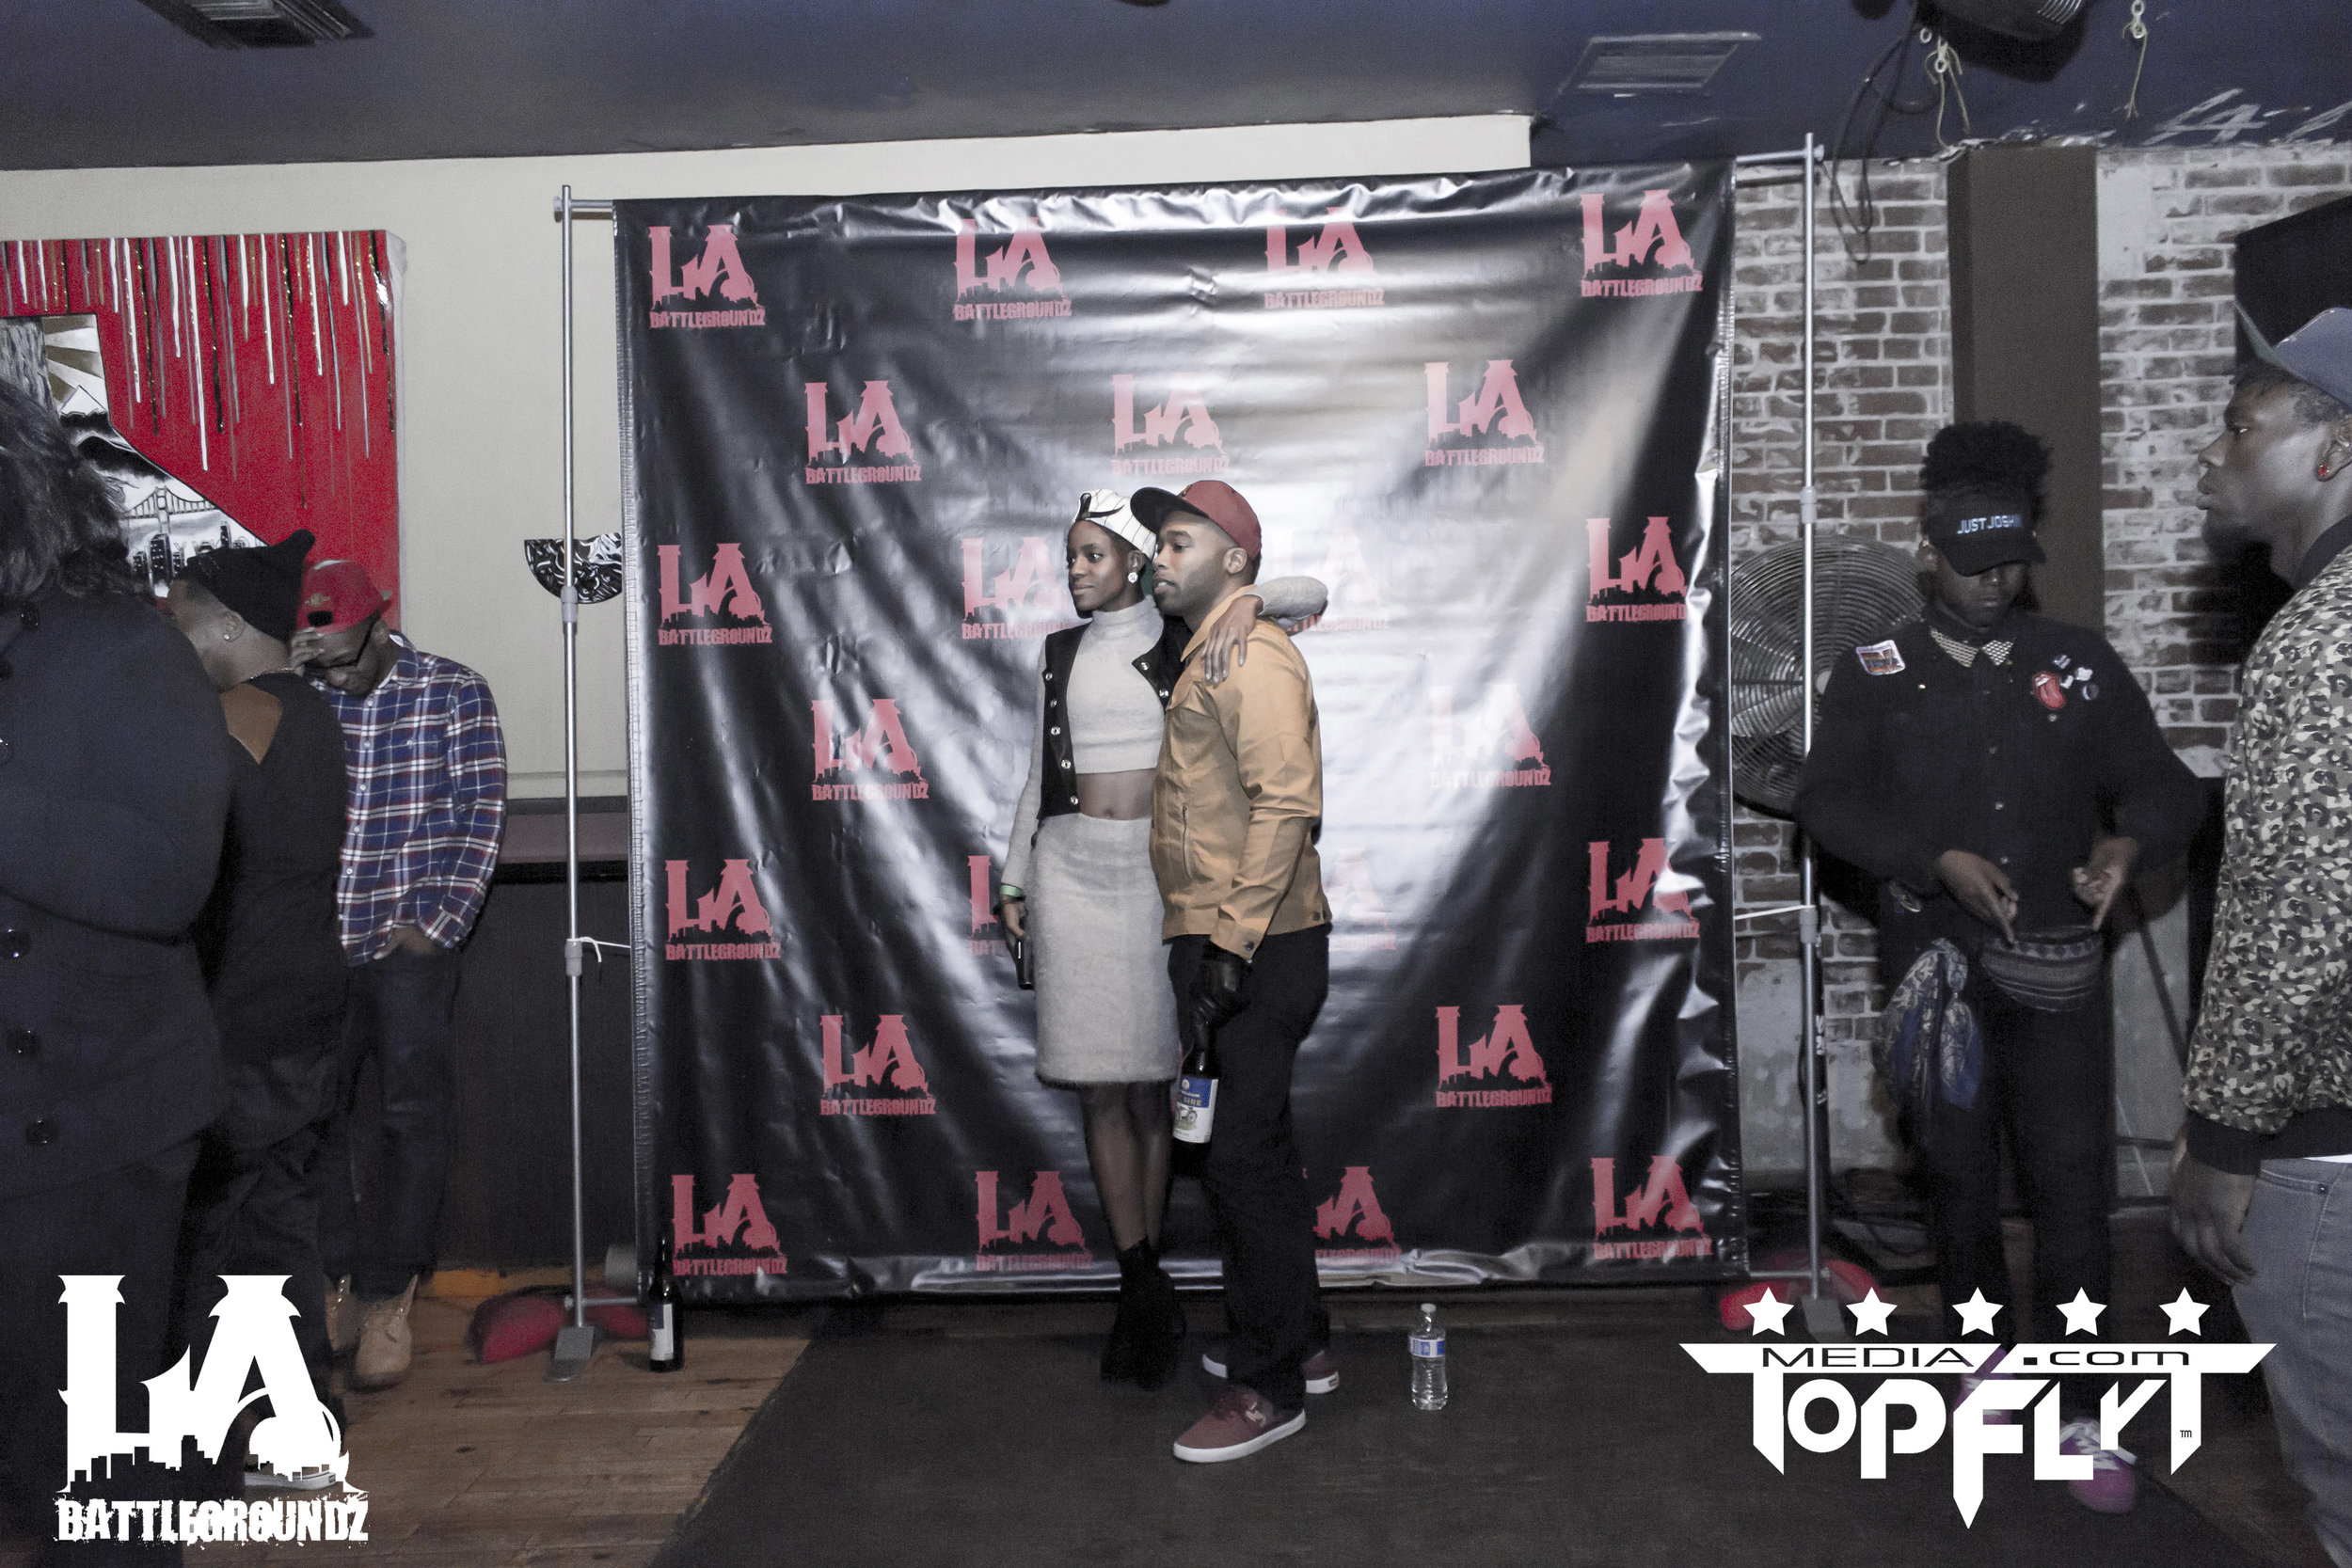 LA Battlegroundz - Decembarfest - The Christening_10.jpg